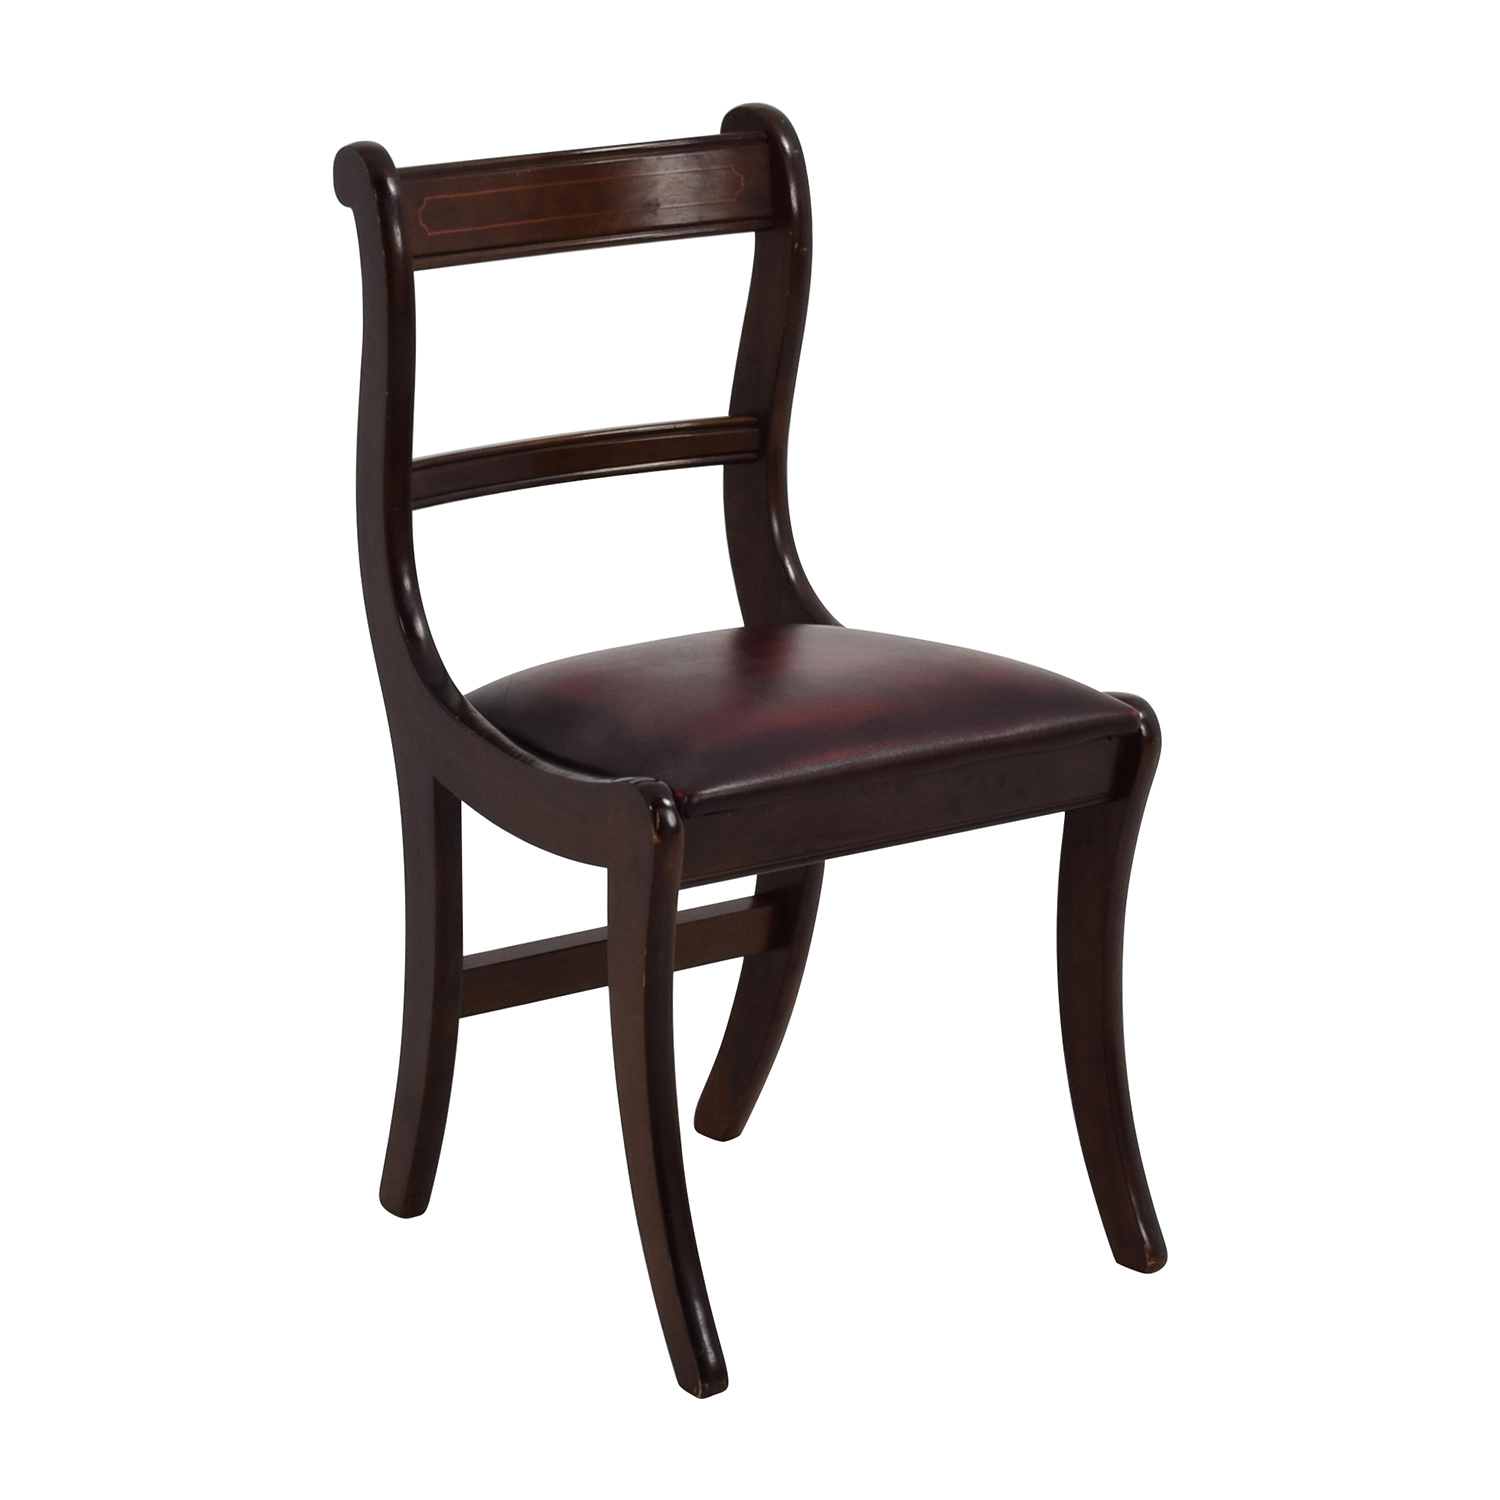 78 off dark wood chair with leather seat chairs. Black Bedroom Furniture Sets. Home Design Ideas